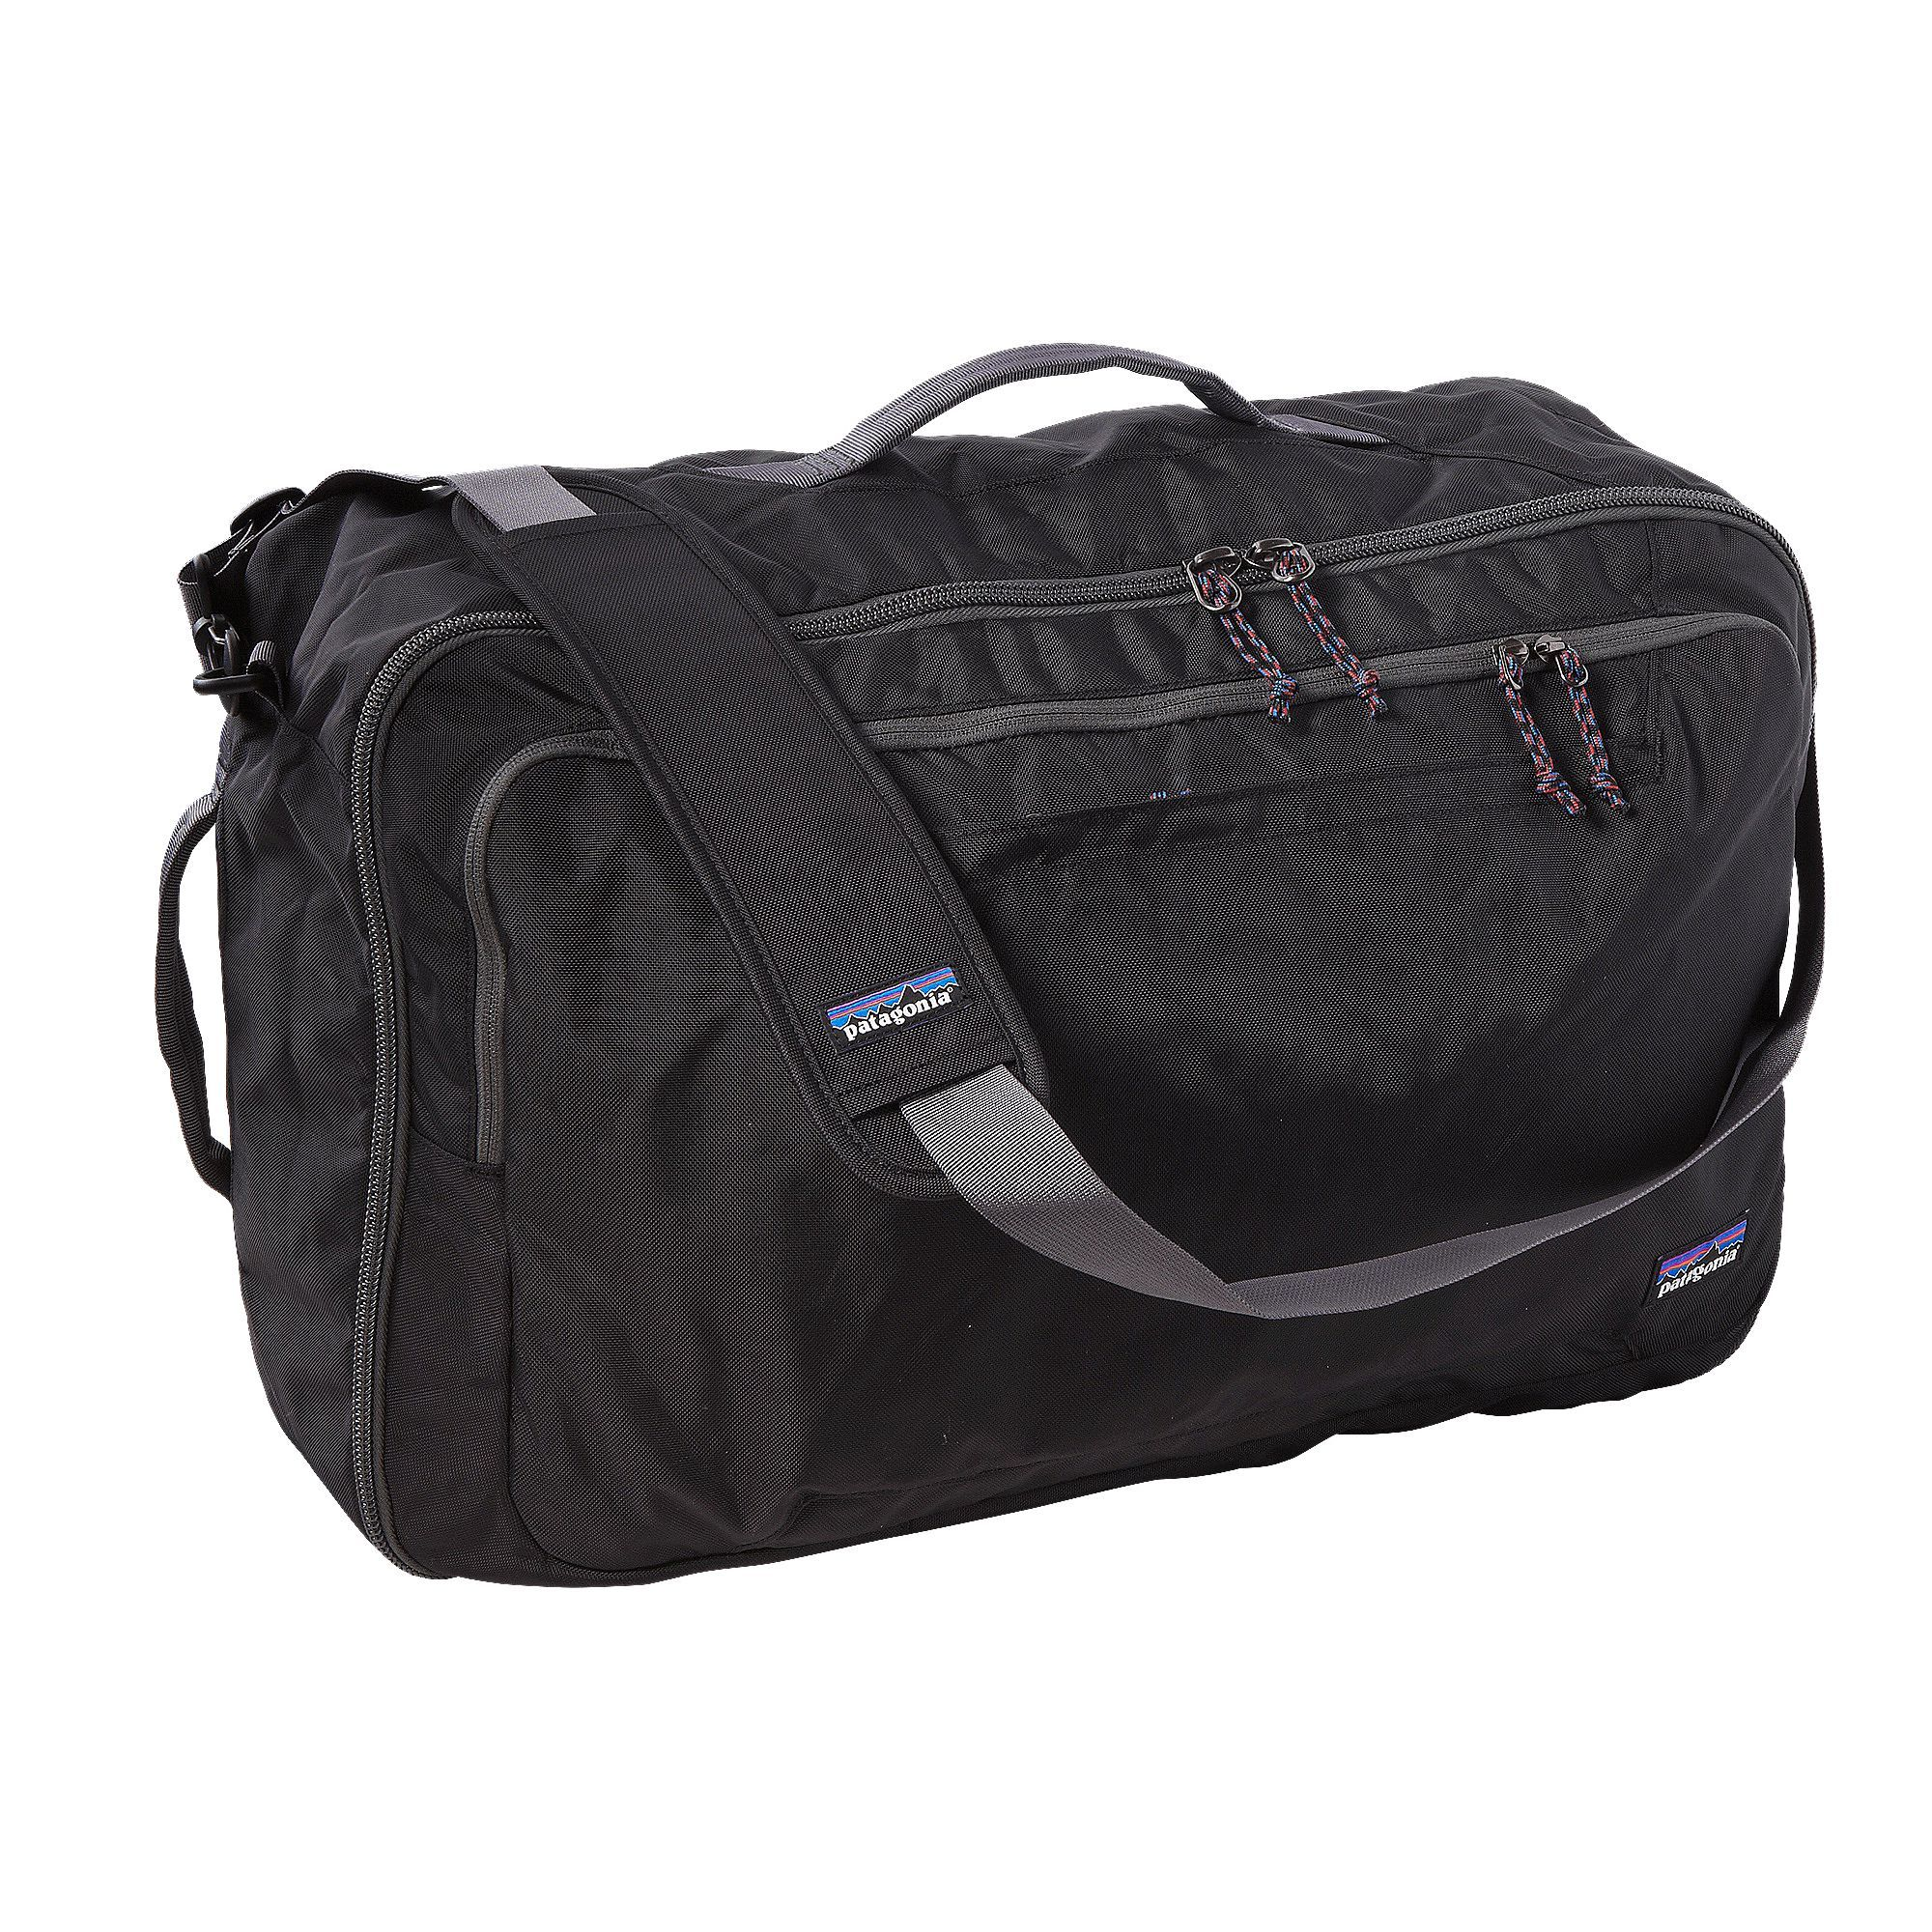 e8d9b4490621 Patagonia Headway MLC® 45L - Convertible Carry On